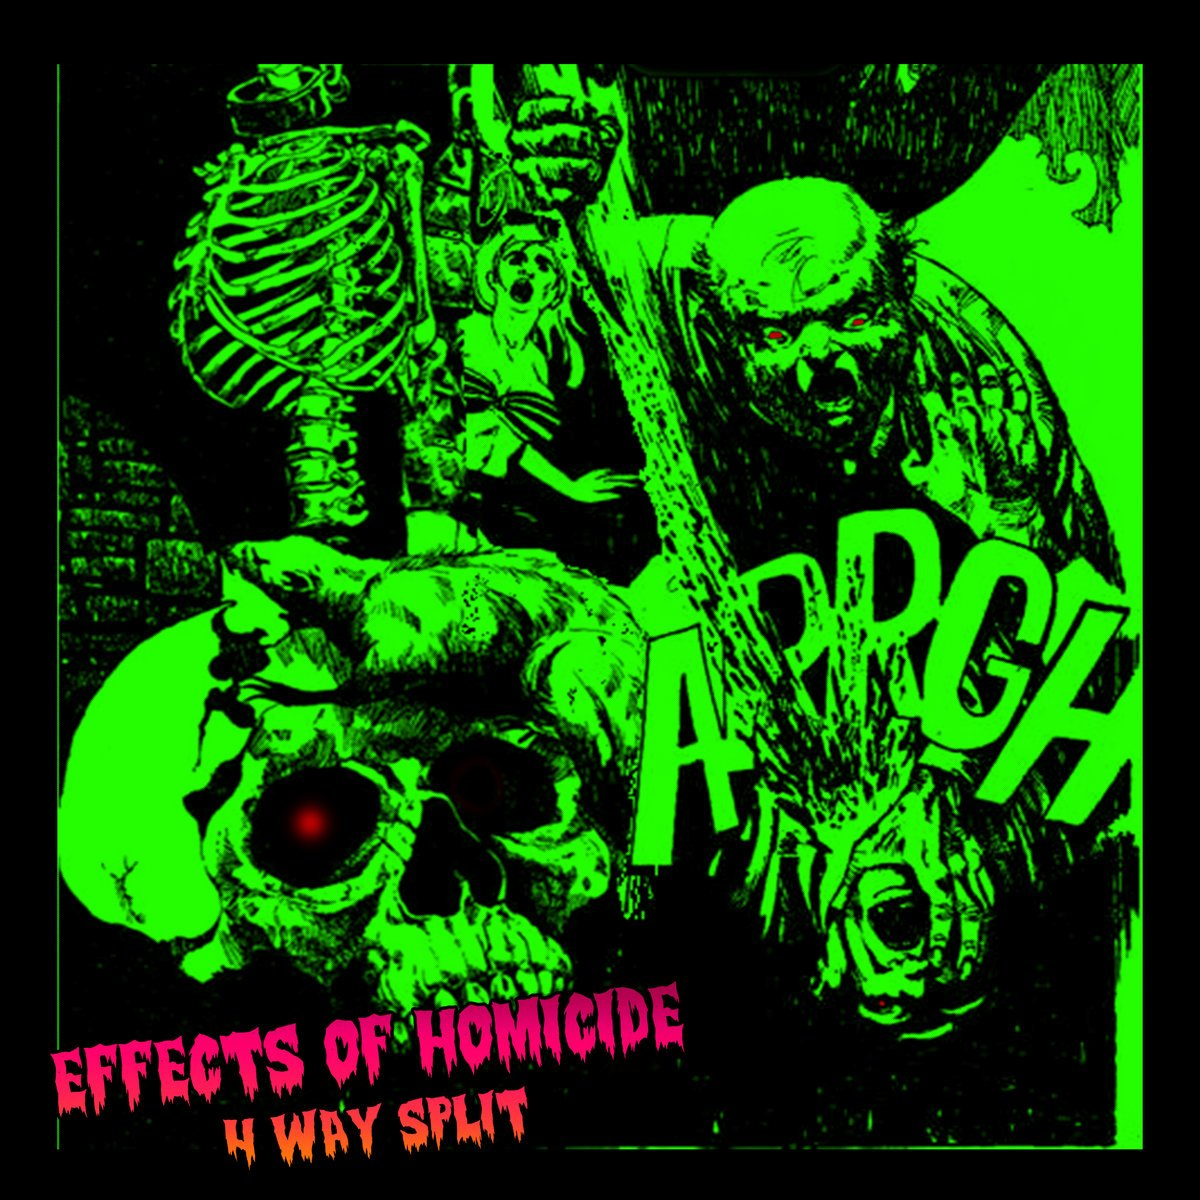 Various Artists - Effects of Homicide [Split]